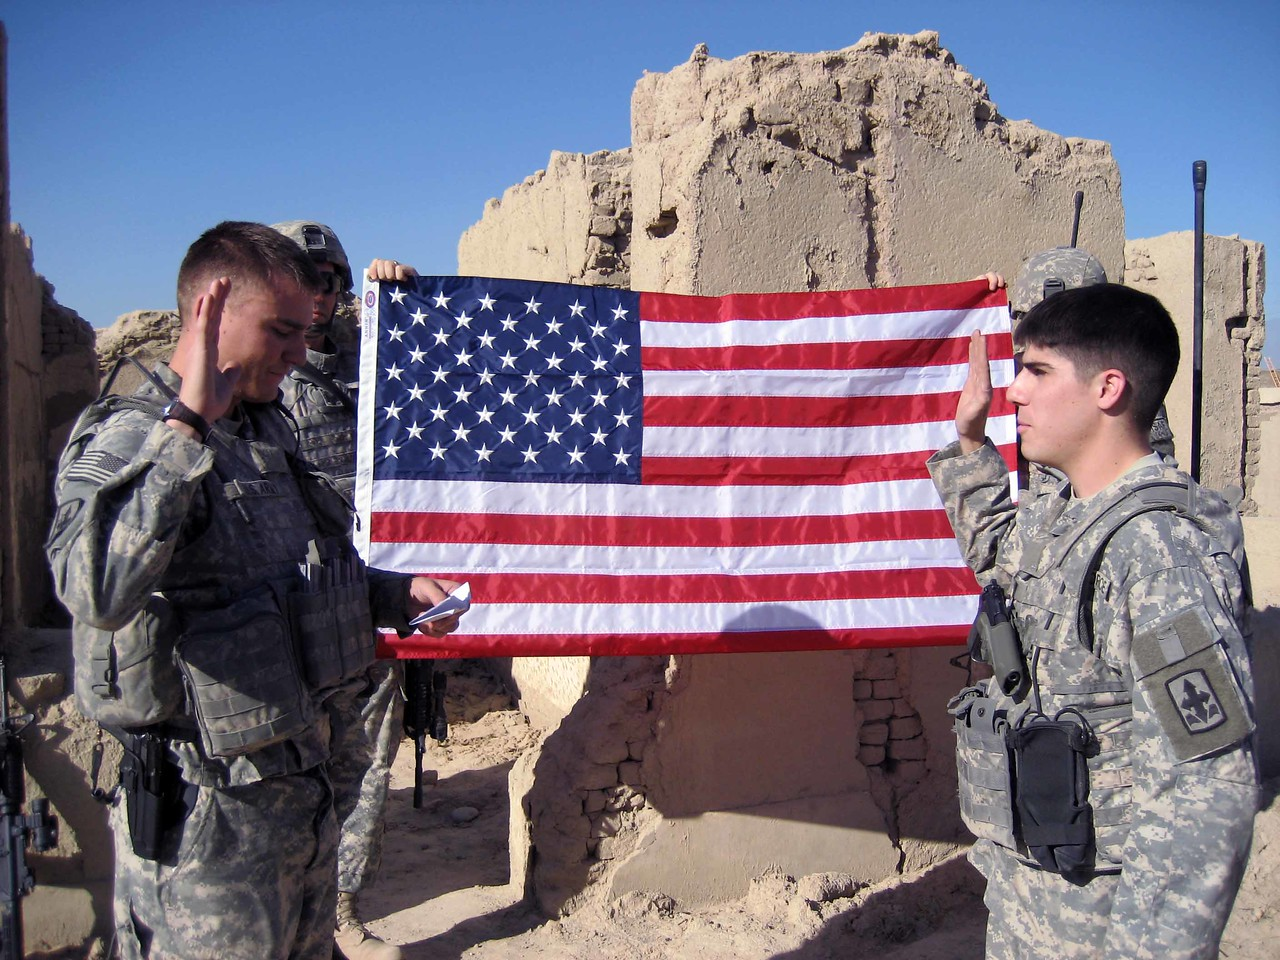 Rob Shuman's re-enlistment in front of the American Flag with Lt Auman.